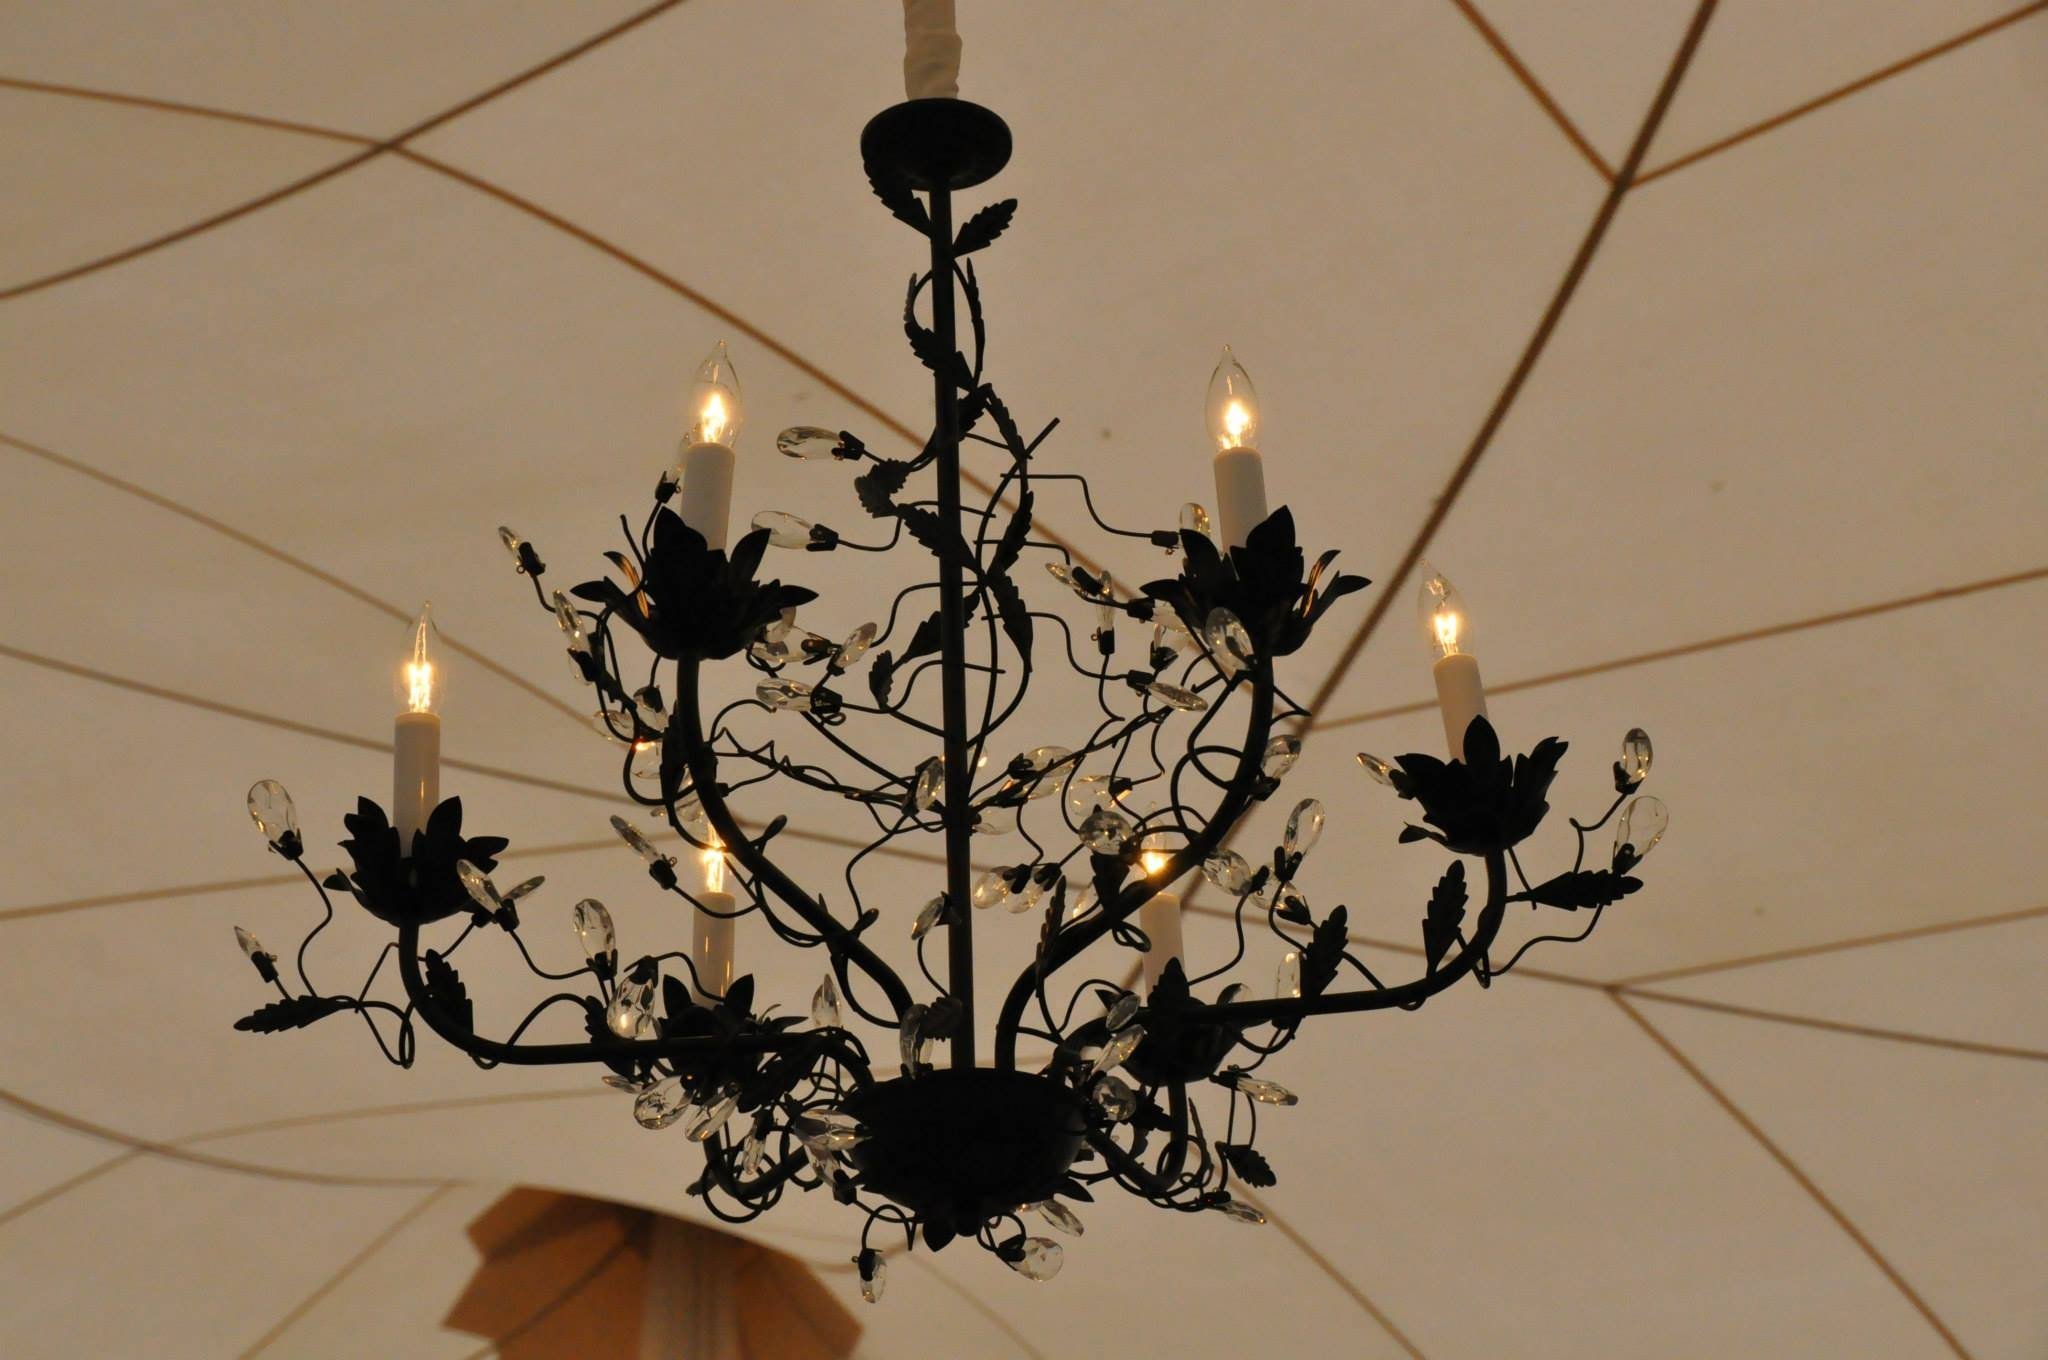 Wrought Iron Light Fixtures - Home Design Ideas And Pictures in Wrought Iron Lights Australia (Image 15 of 15)